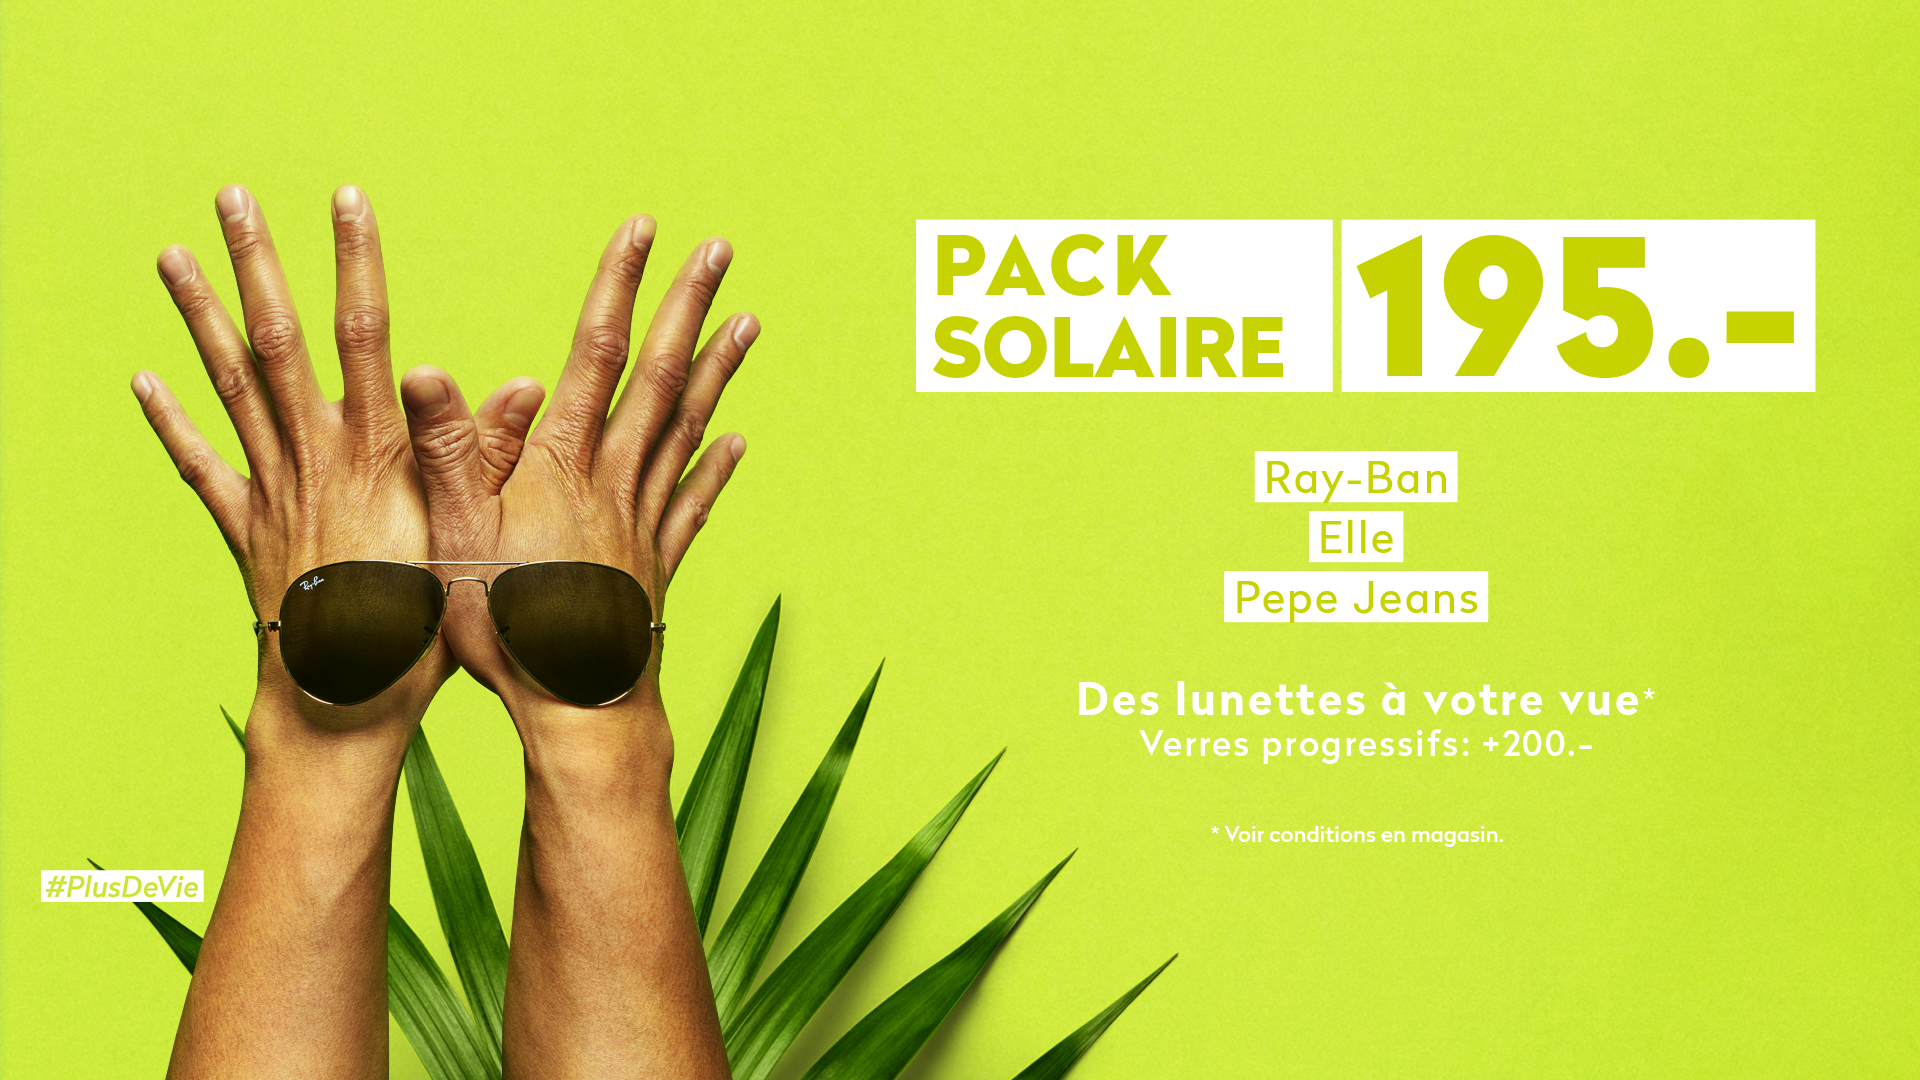 Pack solaire site CC 30.04.2019.png